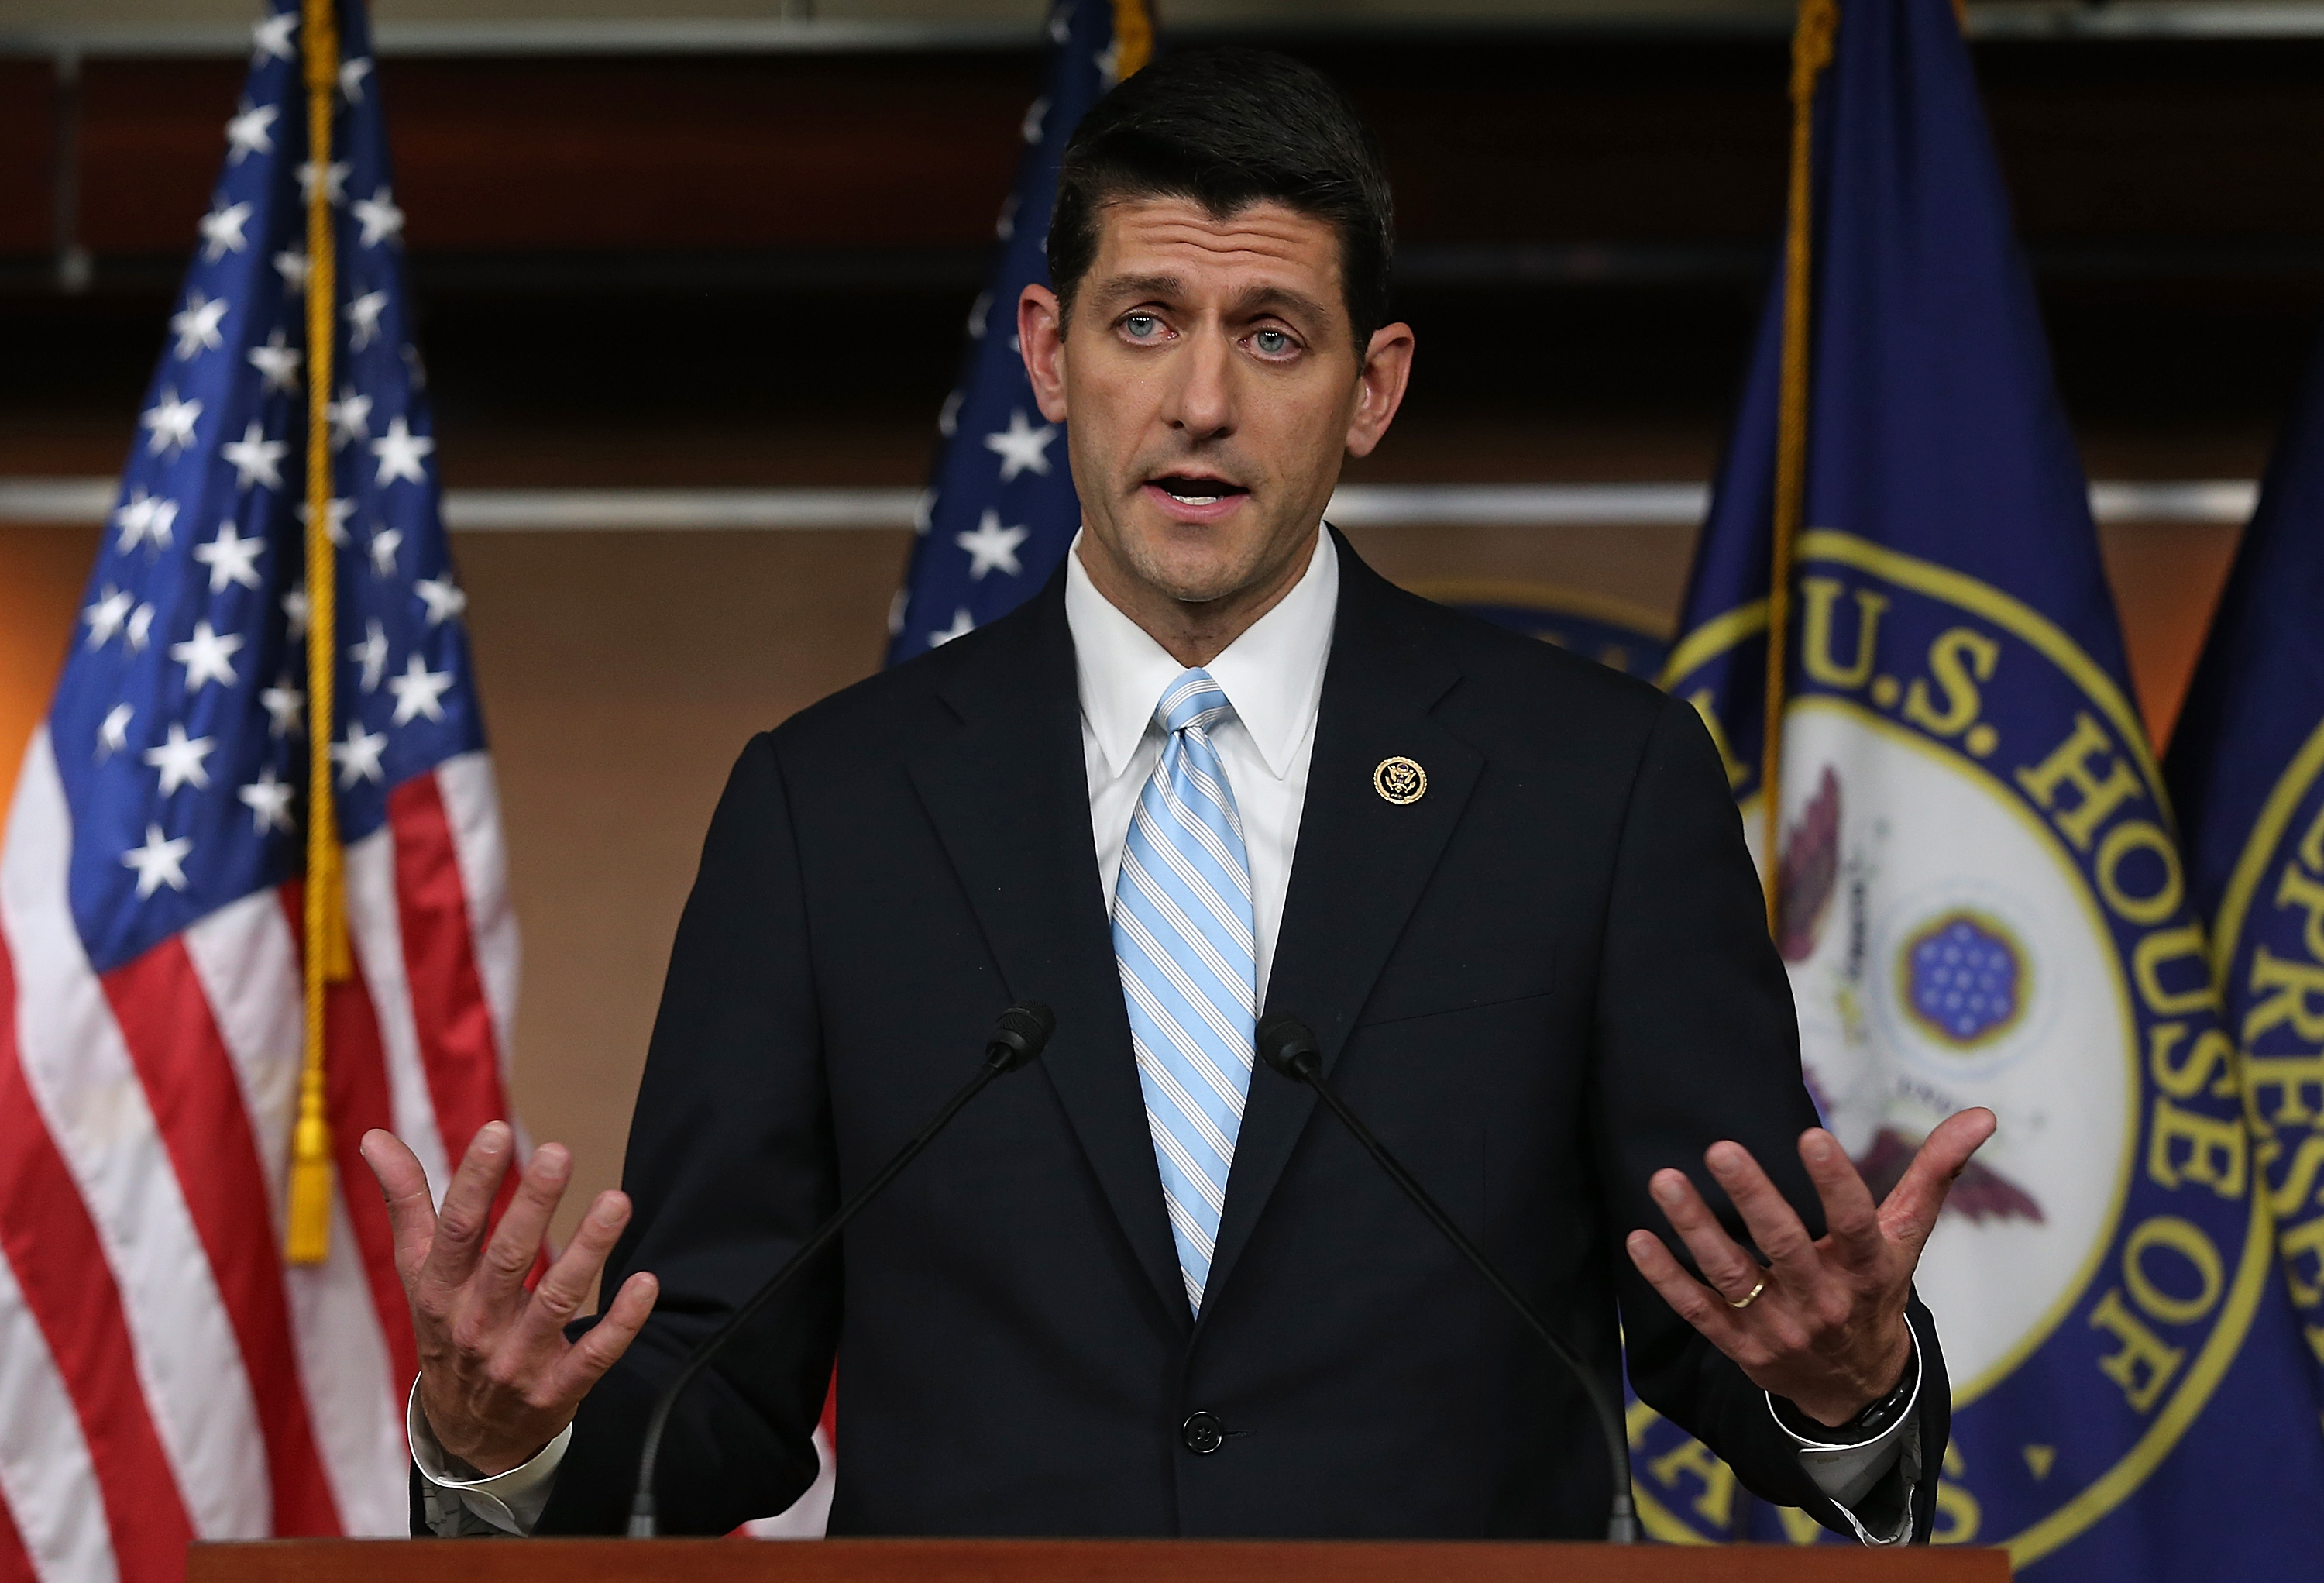 Paul Ryan speaks following a meeting of House Republicans at the U.S. Capitol on Oct. 20, 2015 in Washington, D.C.